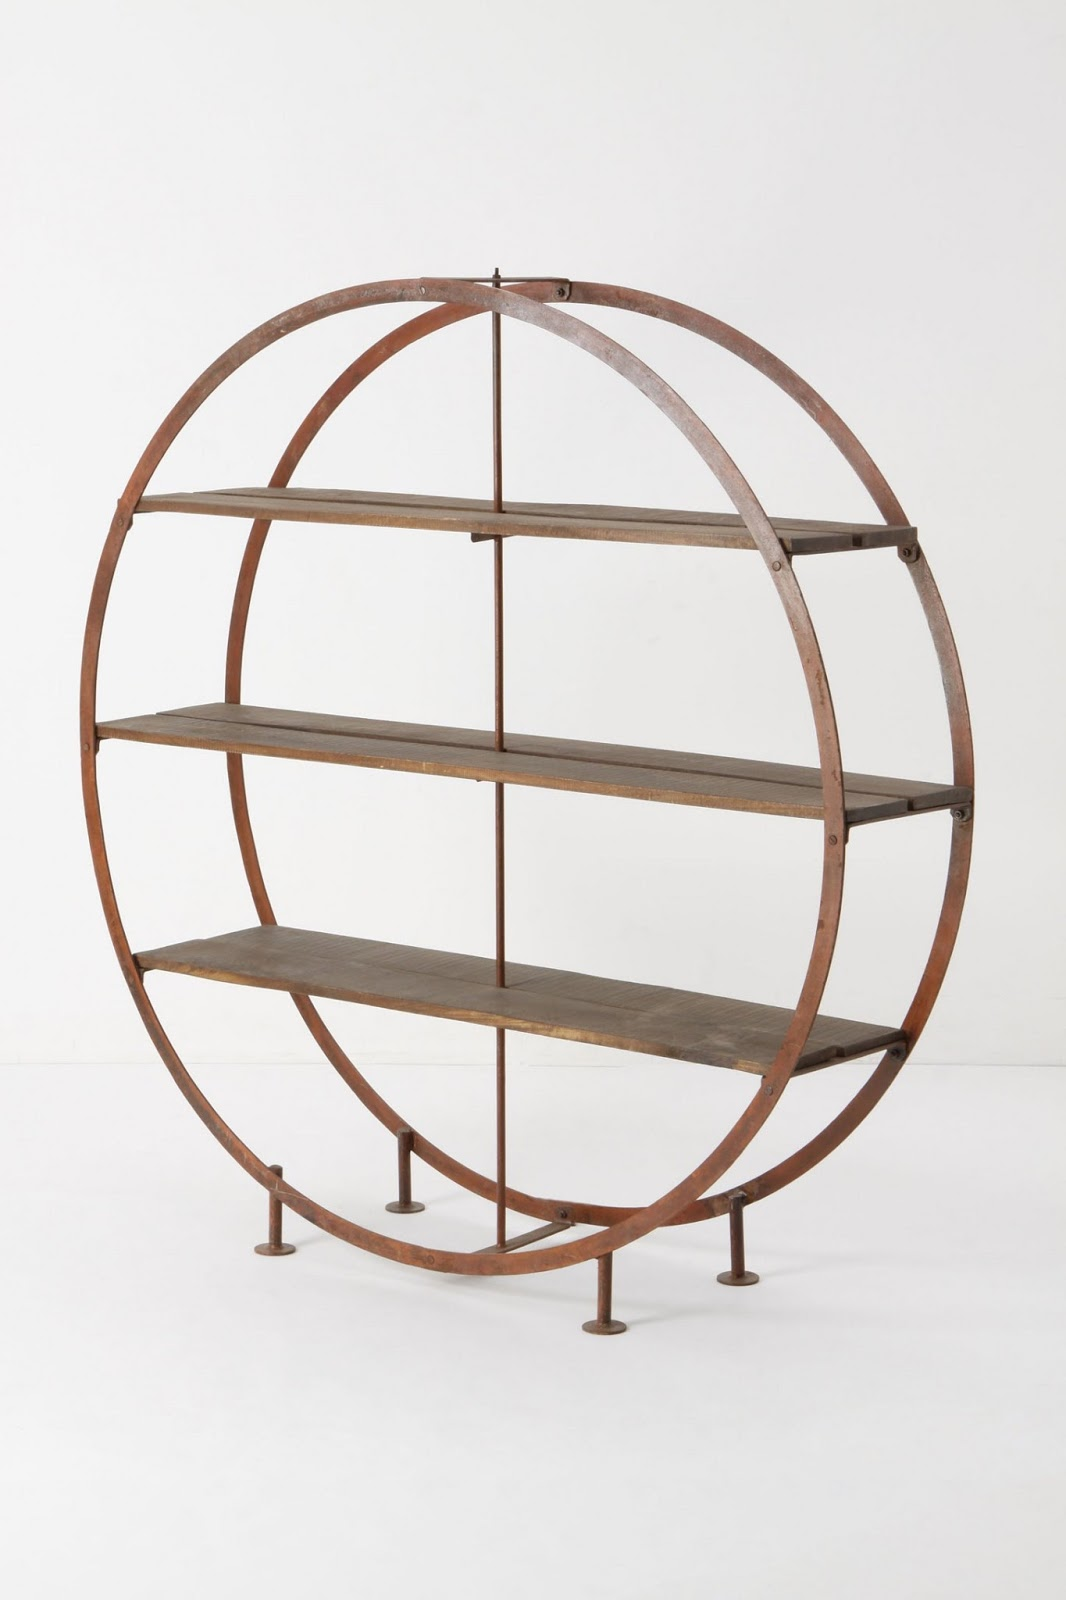 Copy Cat Chic Hudson Goods Round Industrial Bookshelf